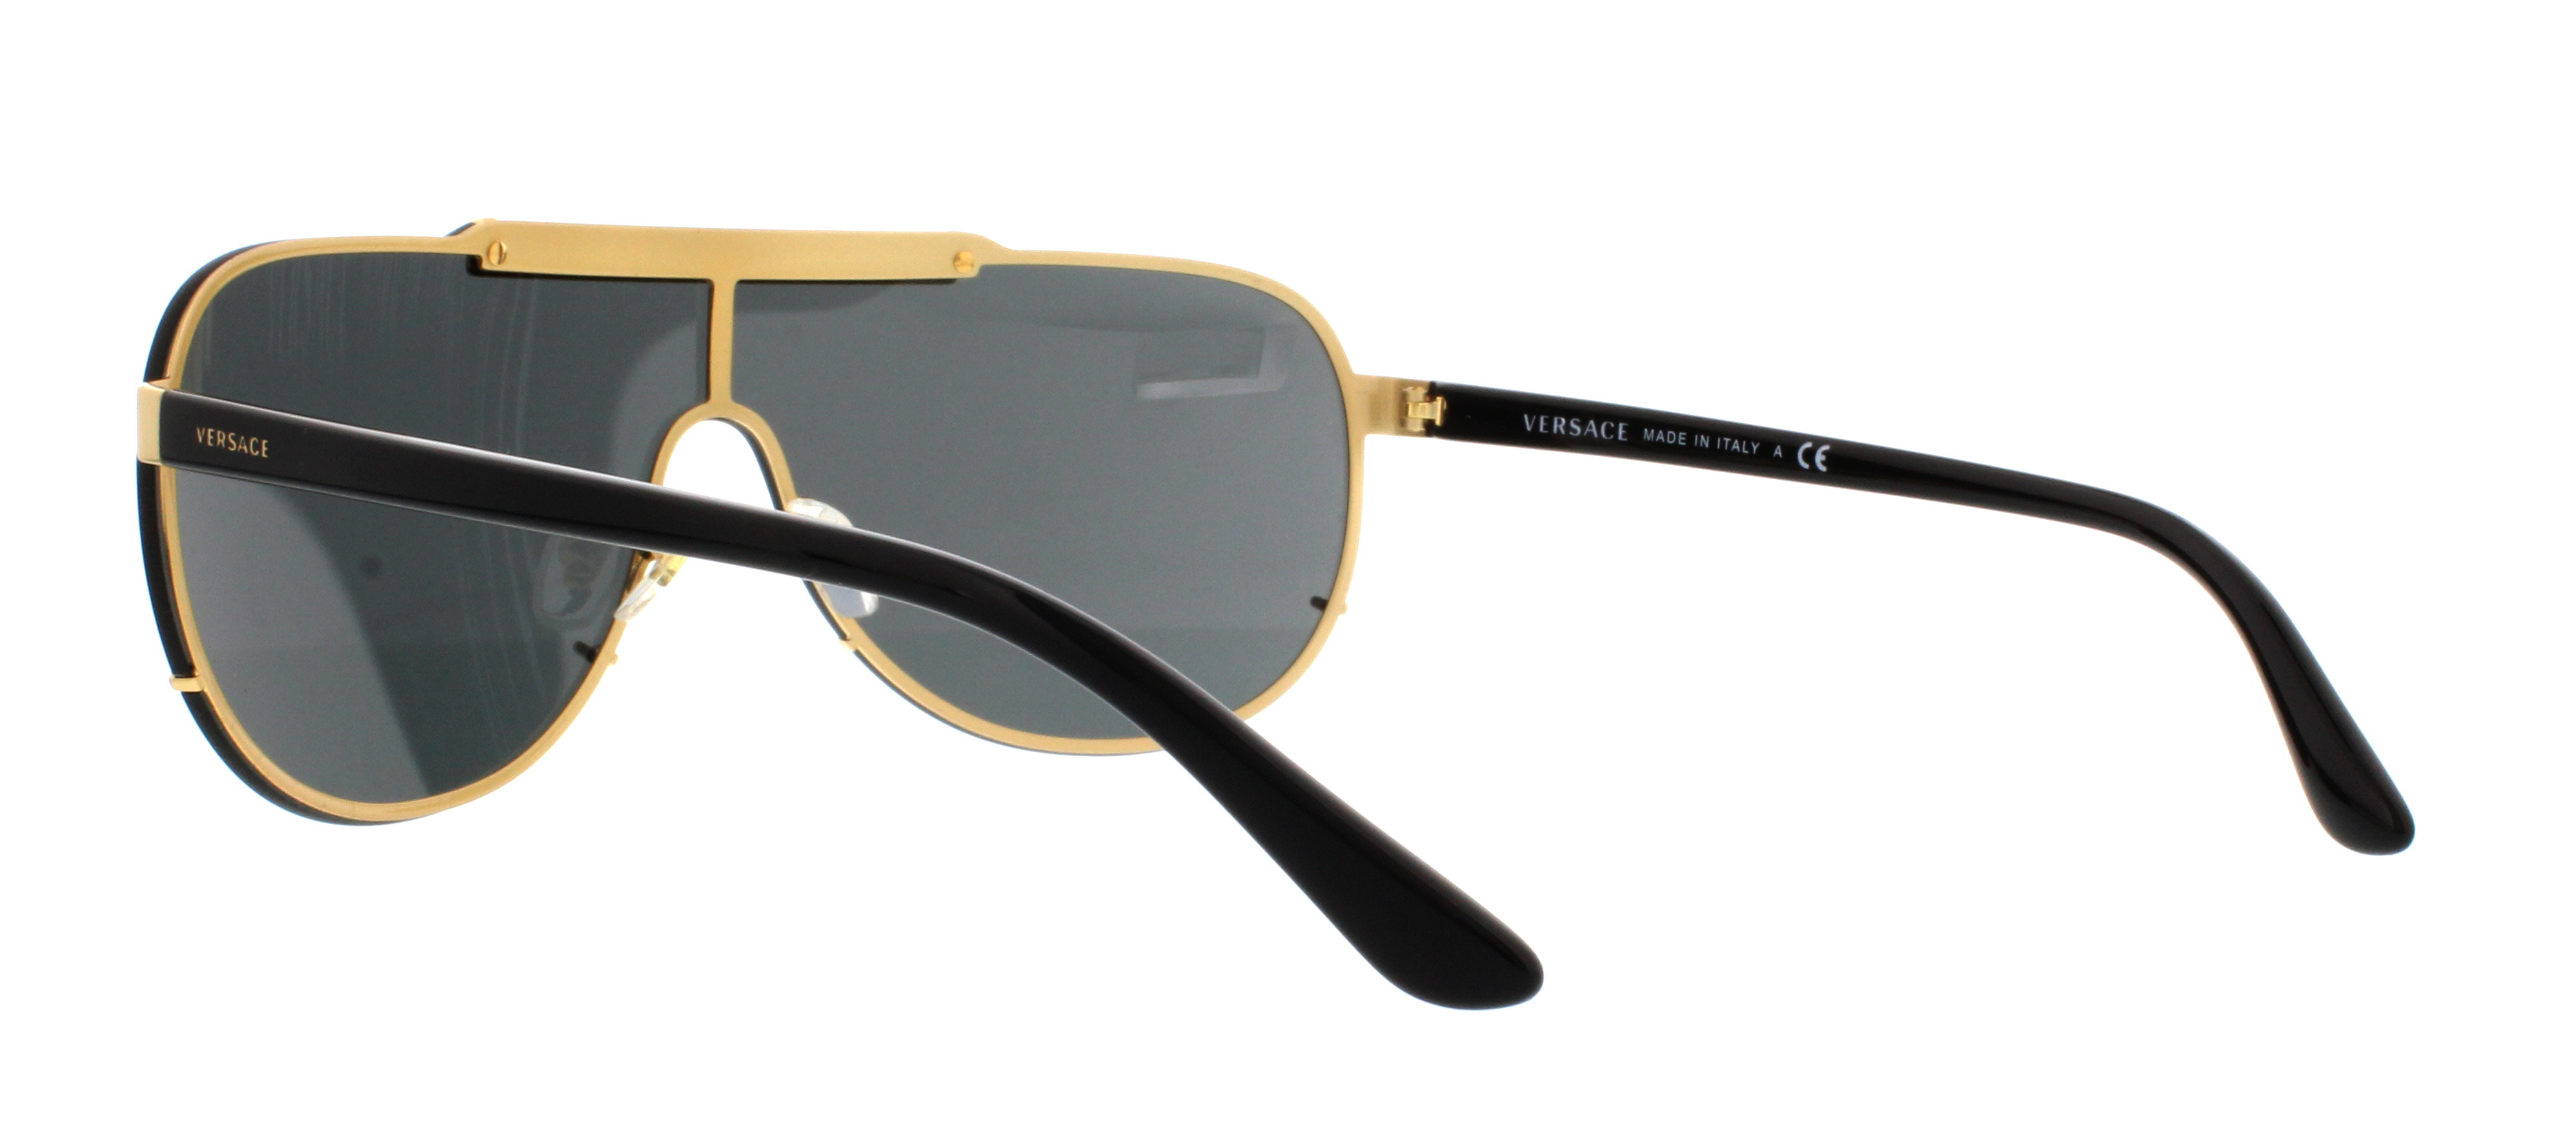 Designer Frames Outlet. Versace VE2140